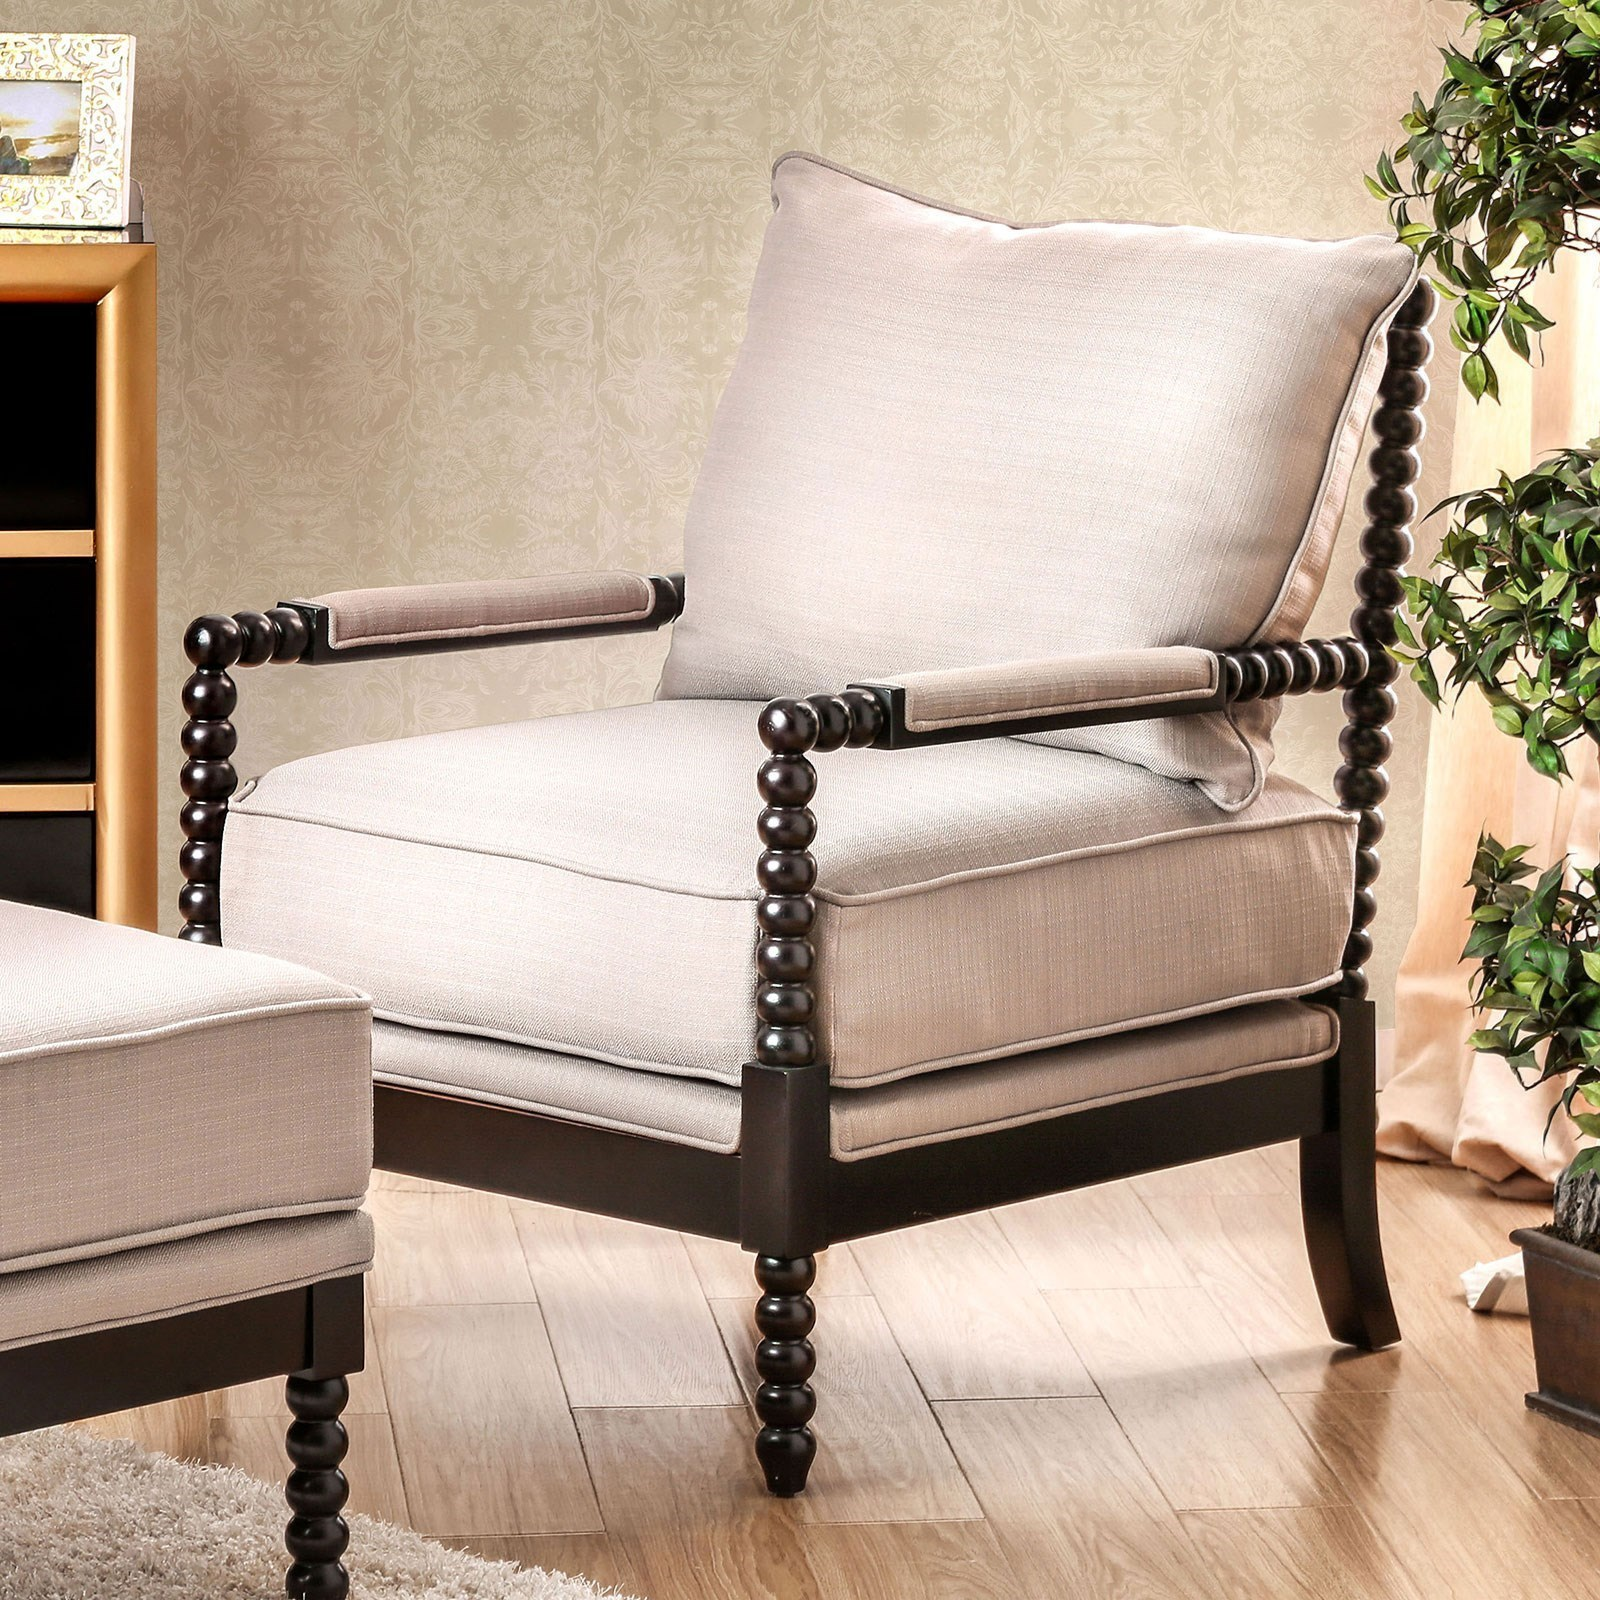 Wondrous Furniture Of America Sybil Cm Ac6140Bg Accent Chair Beige Caraccident5 Cool Chair Designs And Ideas Caraccident5Info